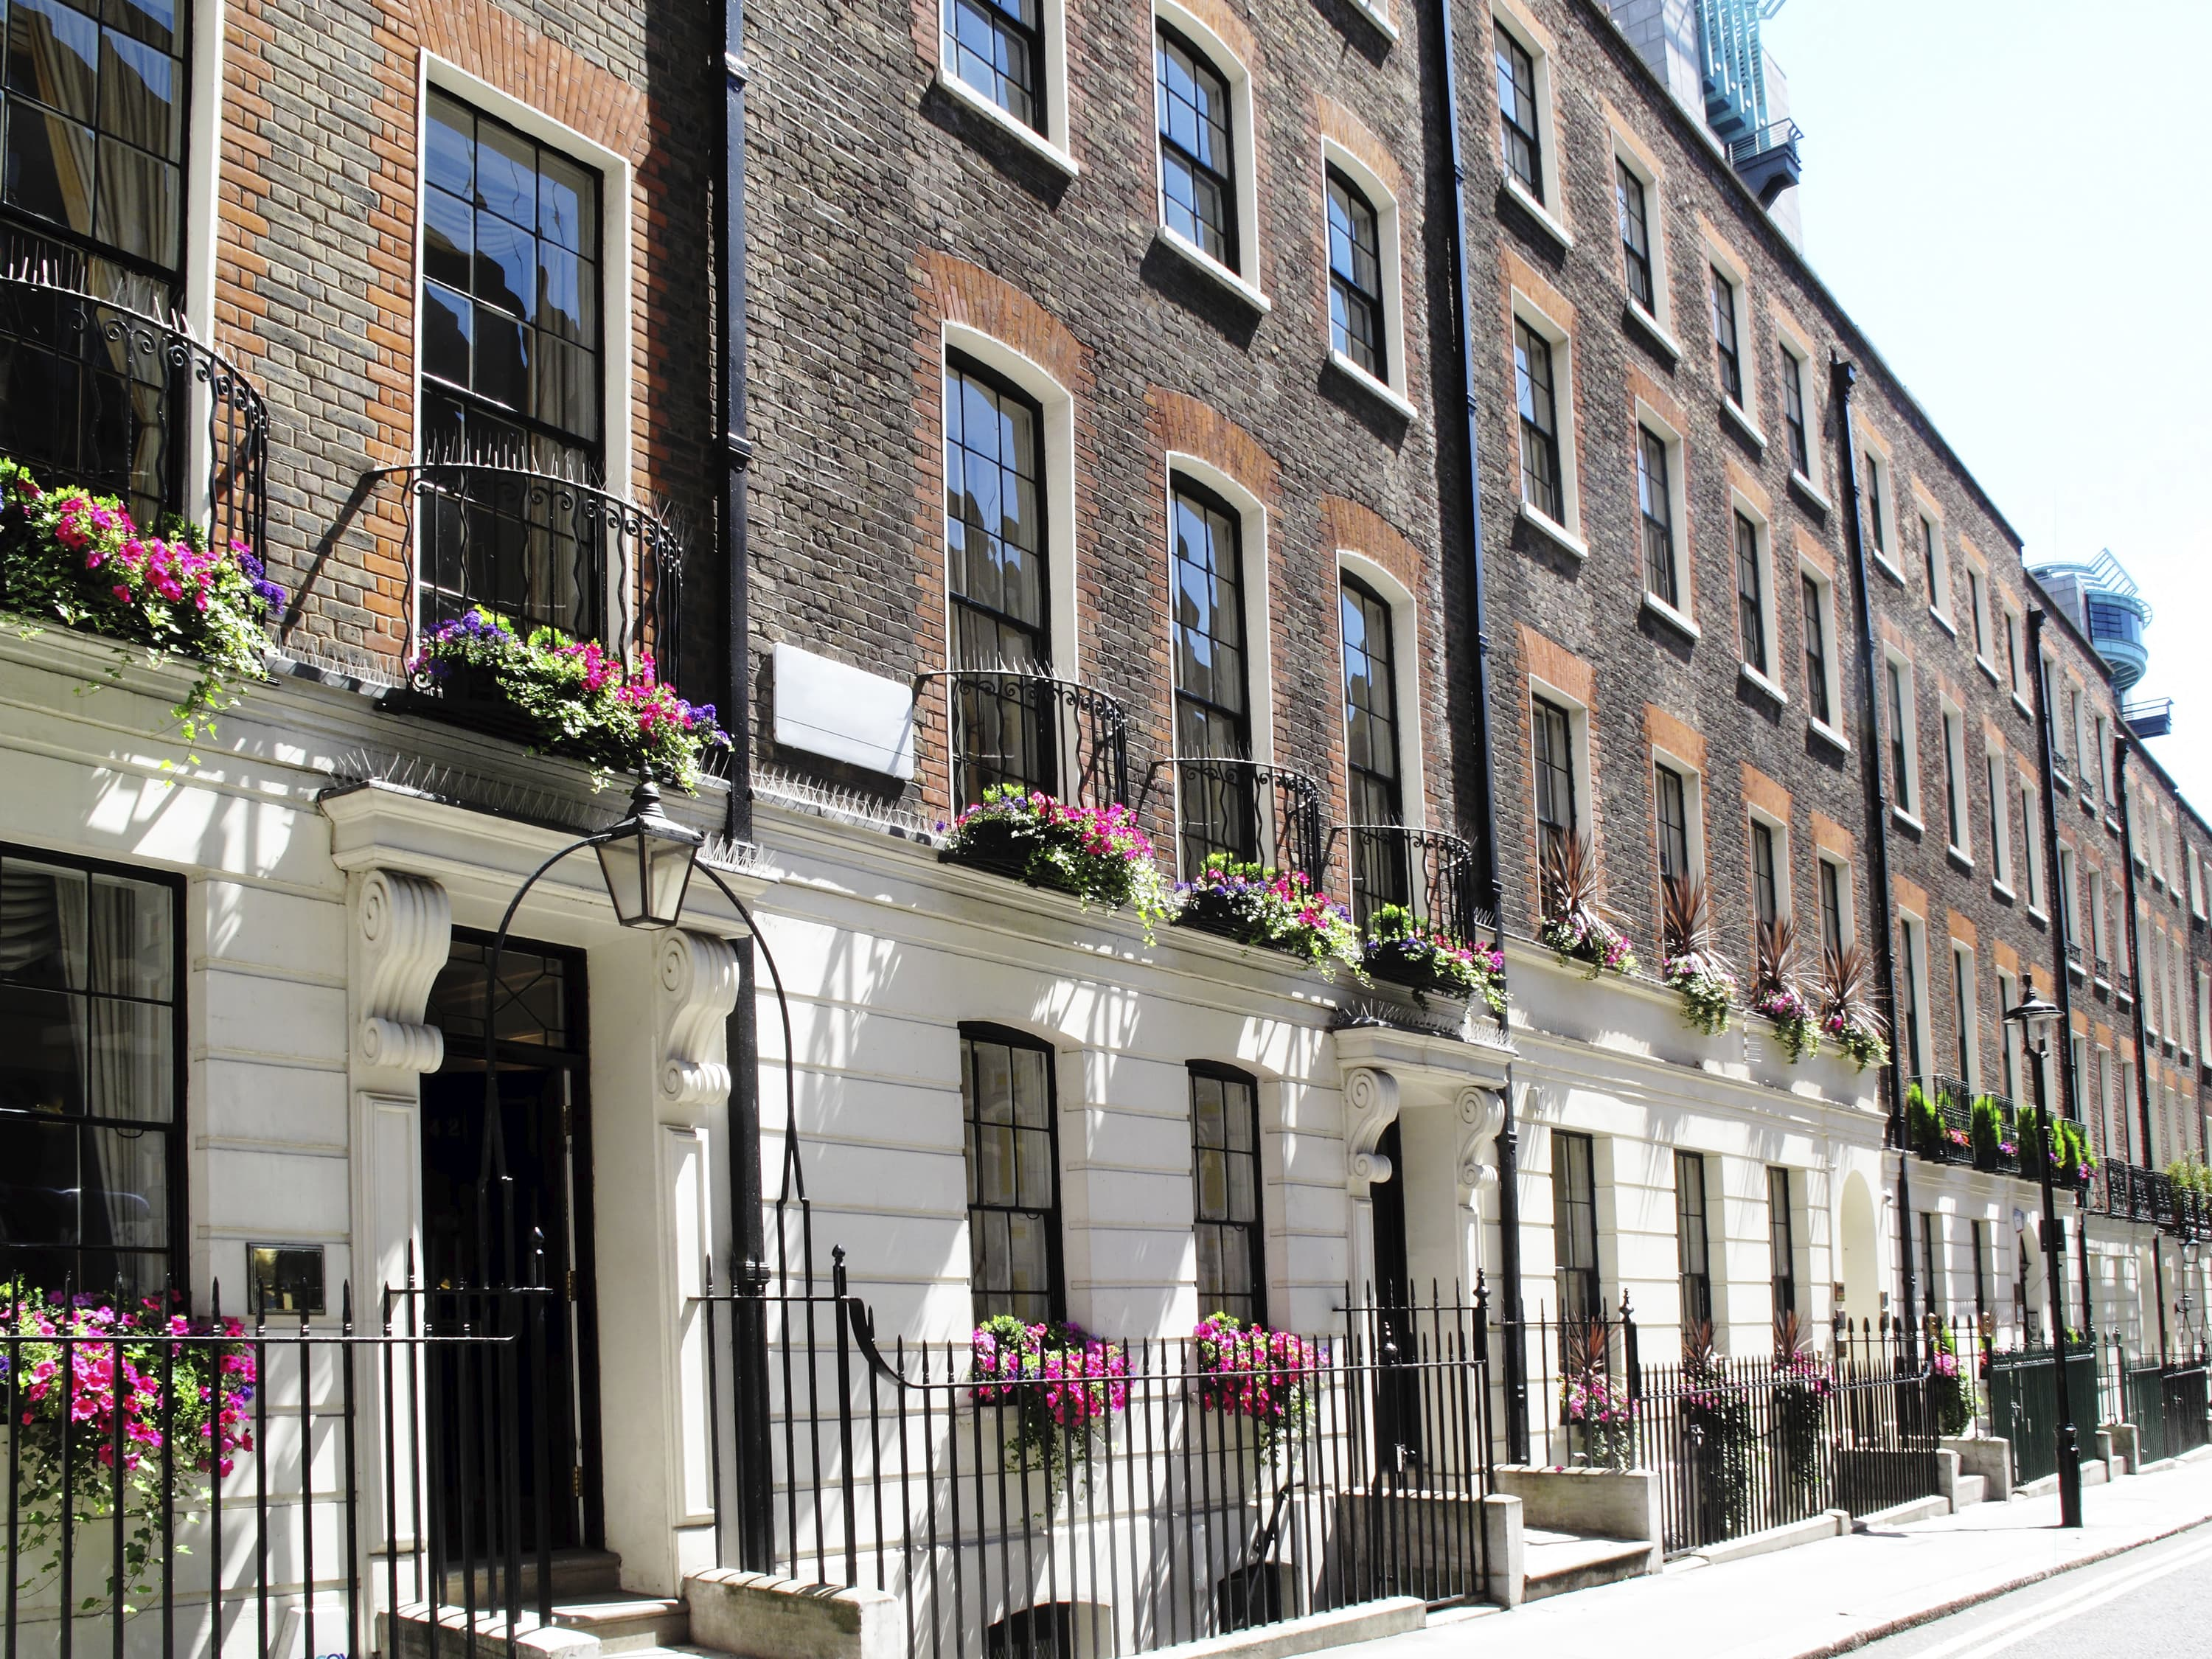 Buyer interest in UK house market grows for first time since 2016